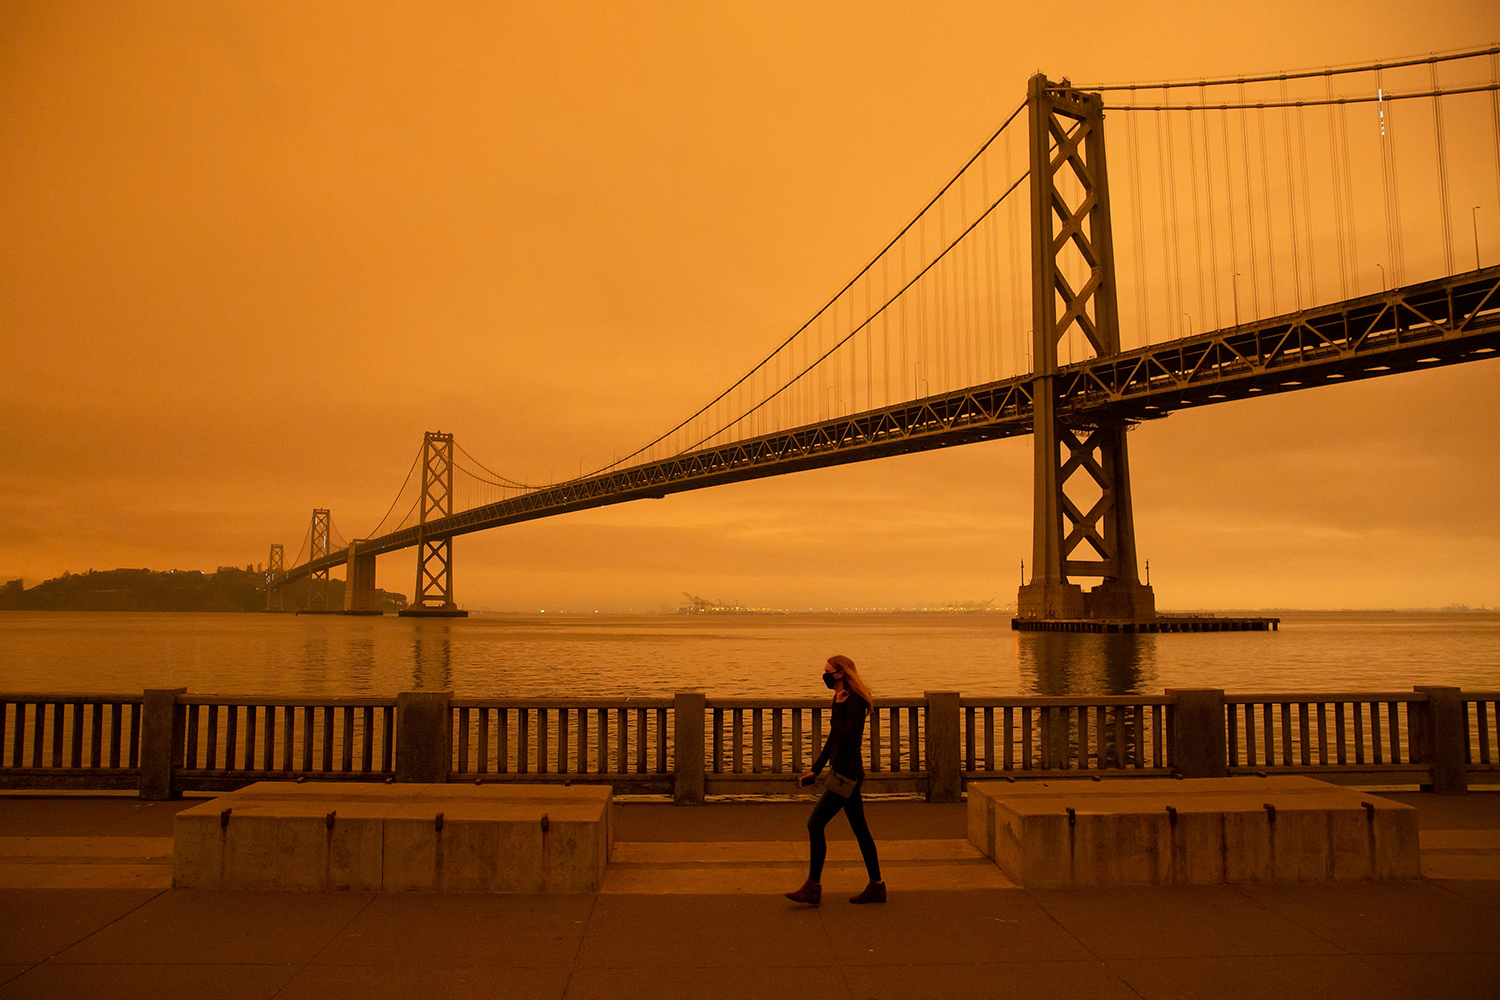 A woman walks along The Embarcadero in San Francisco under an orange smoke-filled sky on Sept. 9. BRITTANY HOSEA-SMALL/AFP via Getty Images